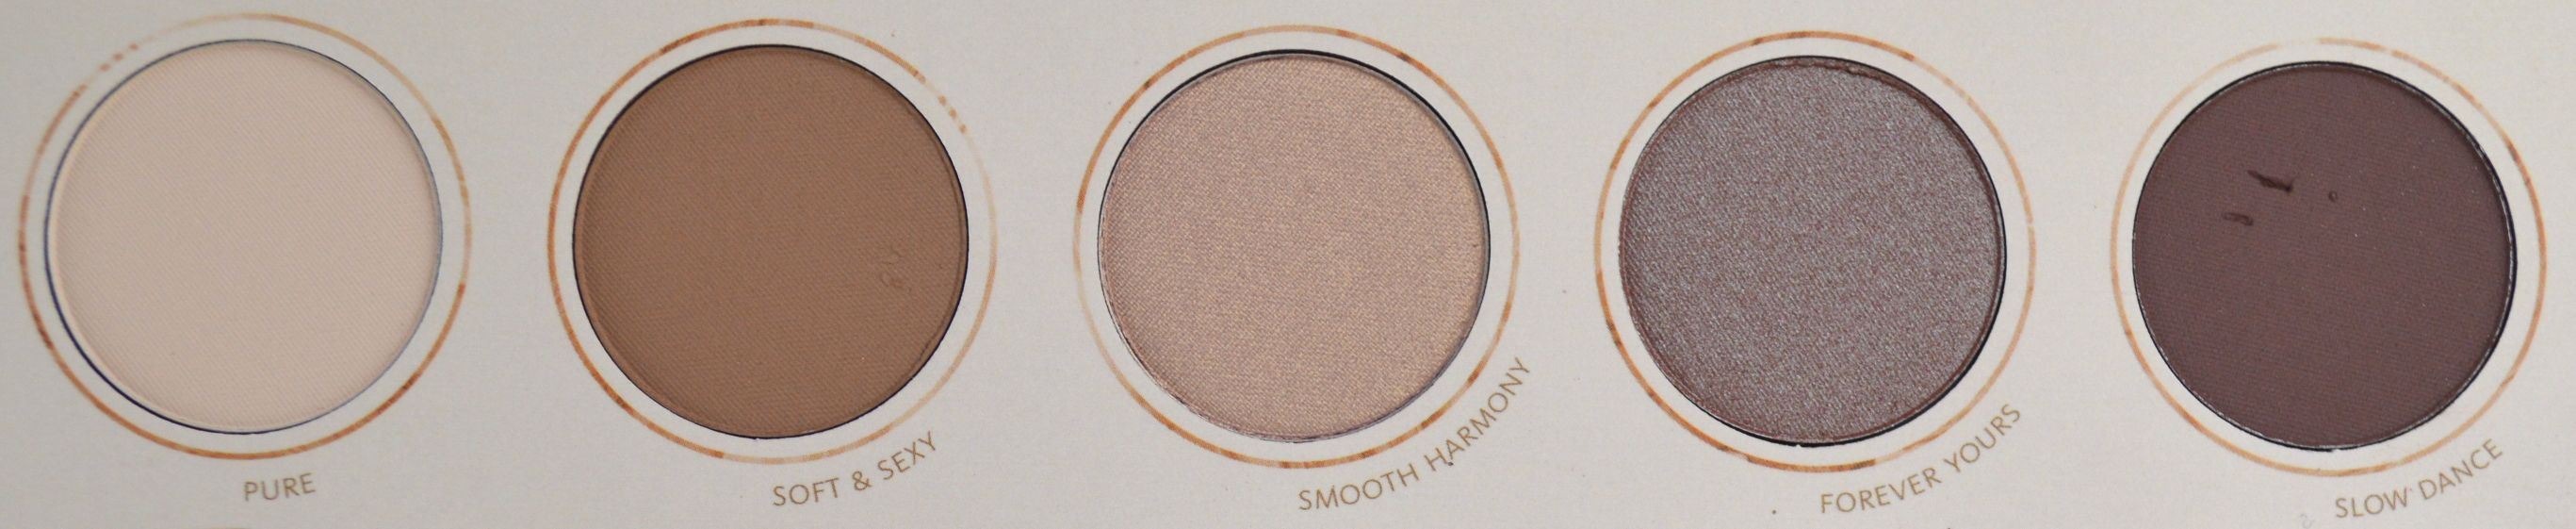 zoeva_naturally_yours_palette_review_mikalicious_1_reihe